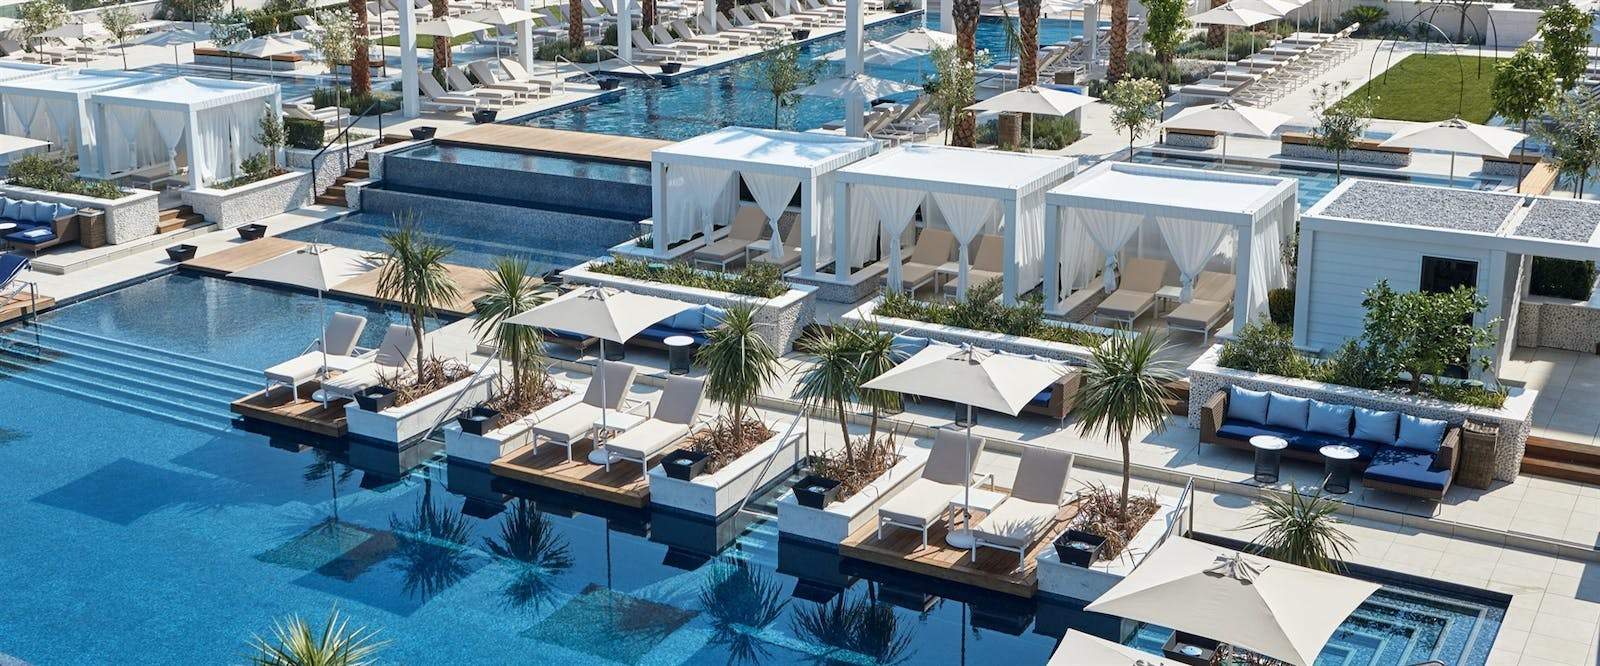 Pool Cabanas at Regent Porto, Montenegro